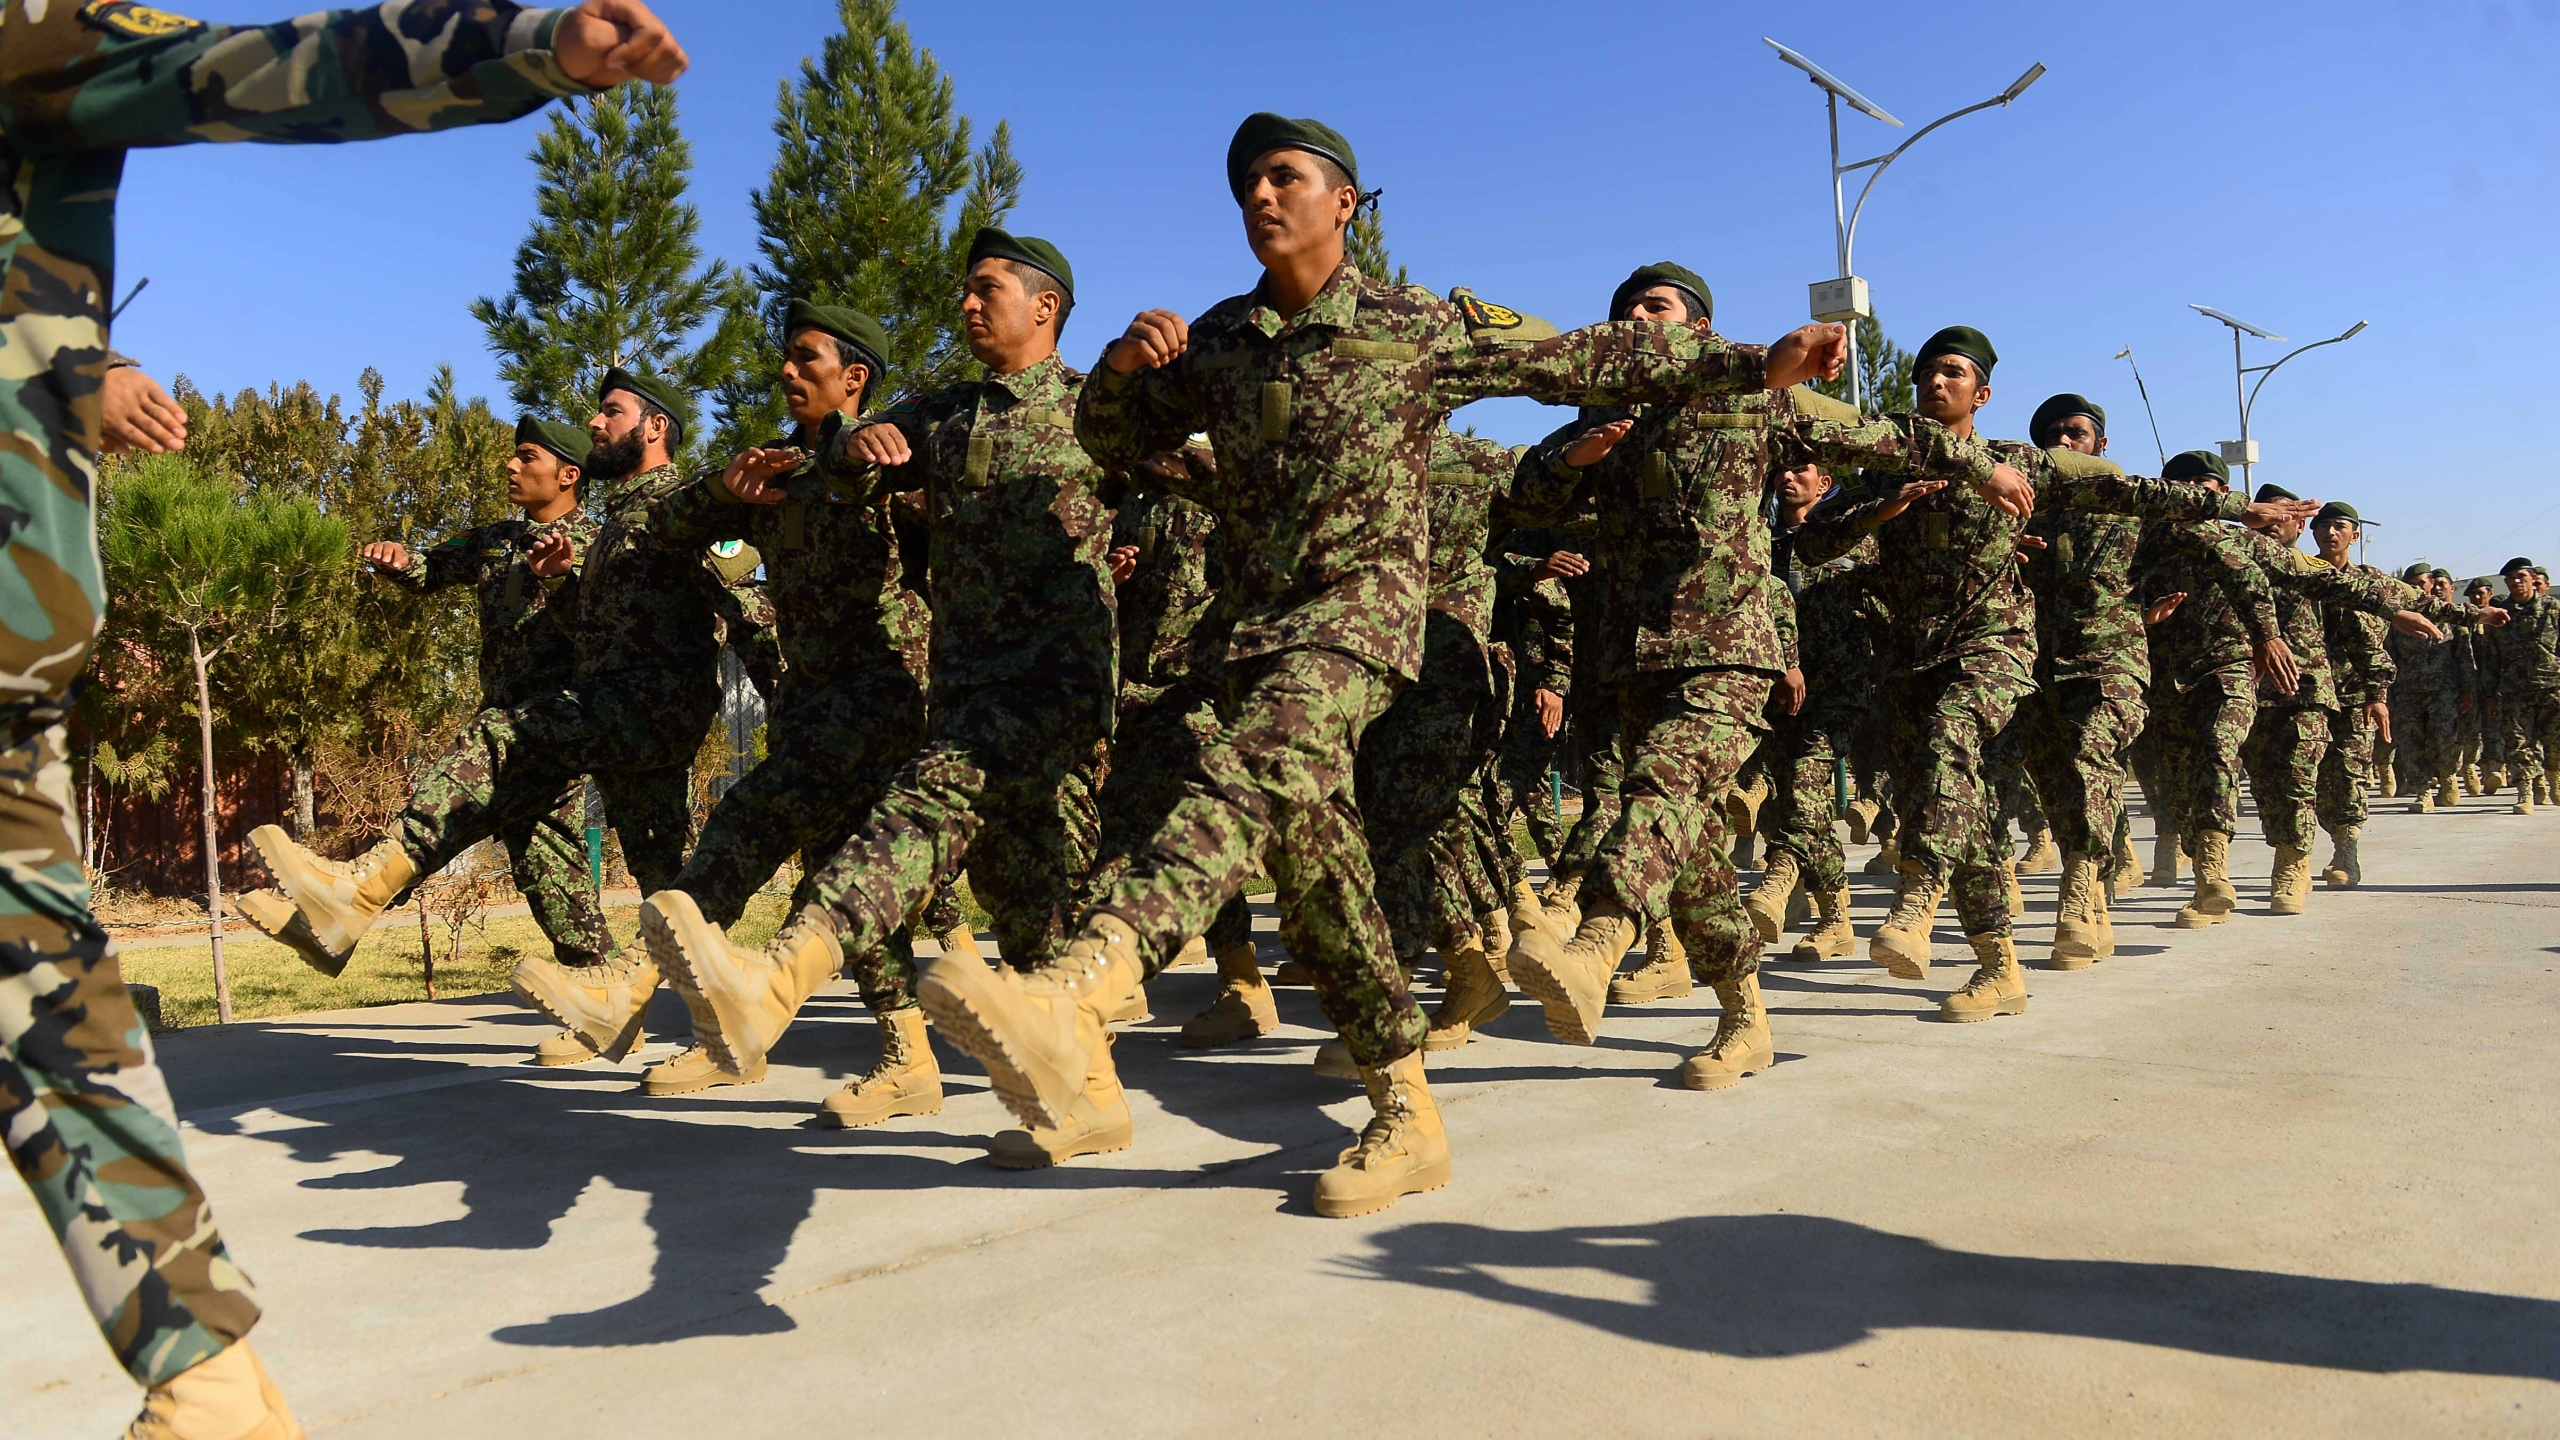 In this photo taken on Nov. 19, 2018, newly-graduated Afghan National Army (ANA) cadets march during a graduation ceremony at the ANA training centre in Herat province. (Credit: HOSHANG HASHIMI/AFP/Getty Images)